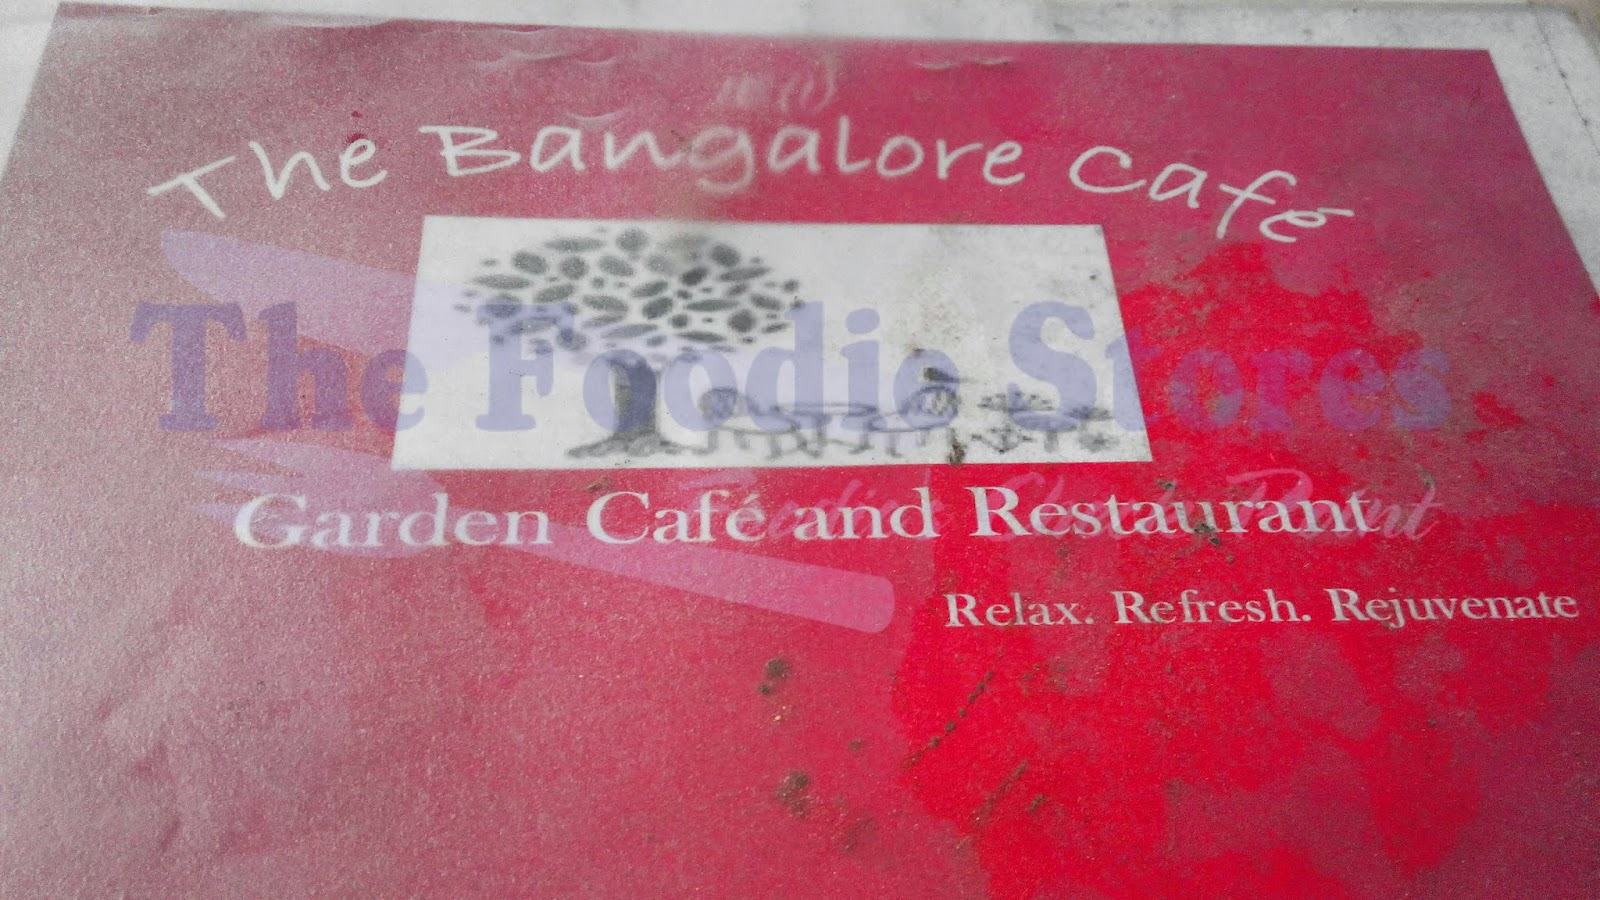 IE (I) The Bangalore Cafe